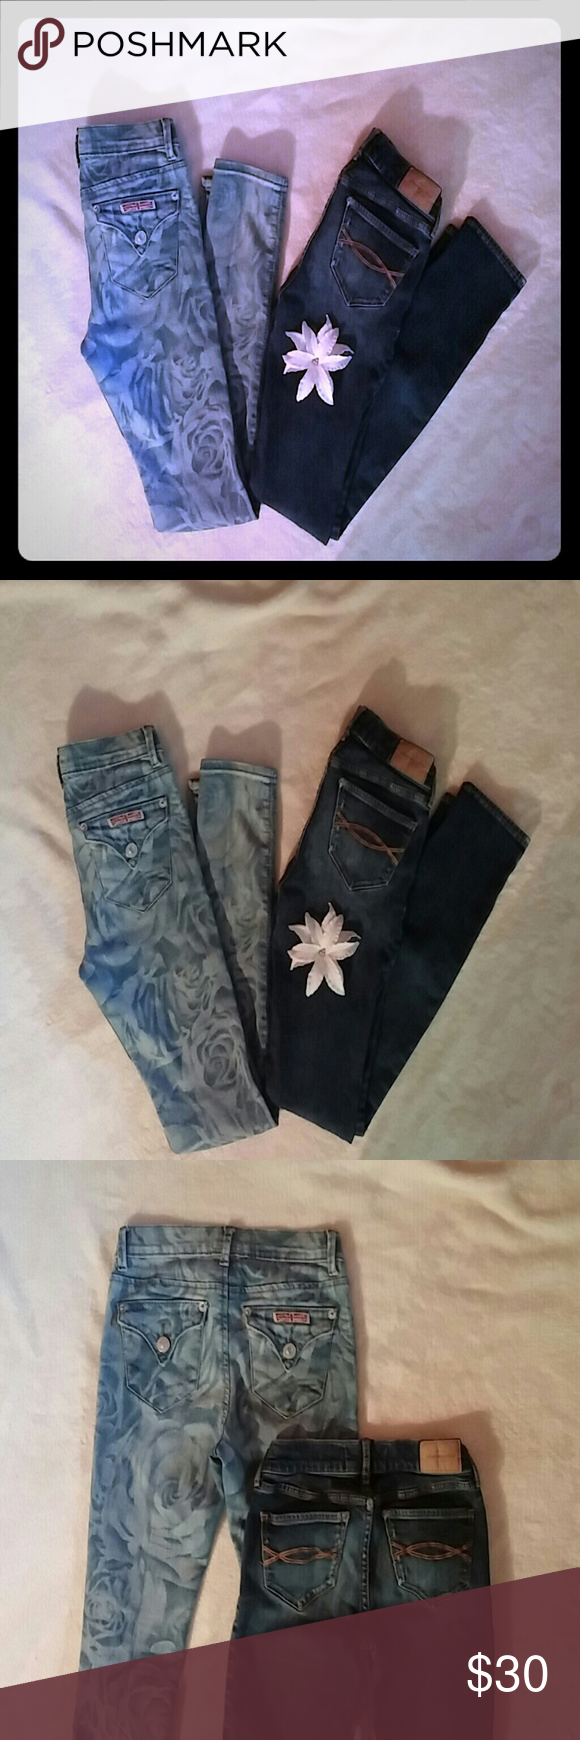 Hudson & Abercrombie Jeans Bundle! Hudson's are like New, worn once, if that.. washed only once. Abercrombie have been loved for sure, but still have life. My youngest daughter grew out of these. Both super cute & a super great deal! 2-pair for only $30!!! Jr. Girls Size 12. Enjoy! Hudson Jeans Bottoms Jeans